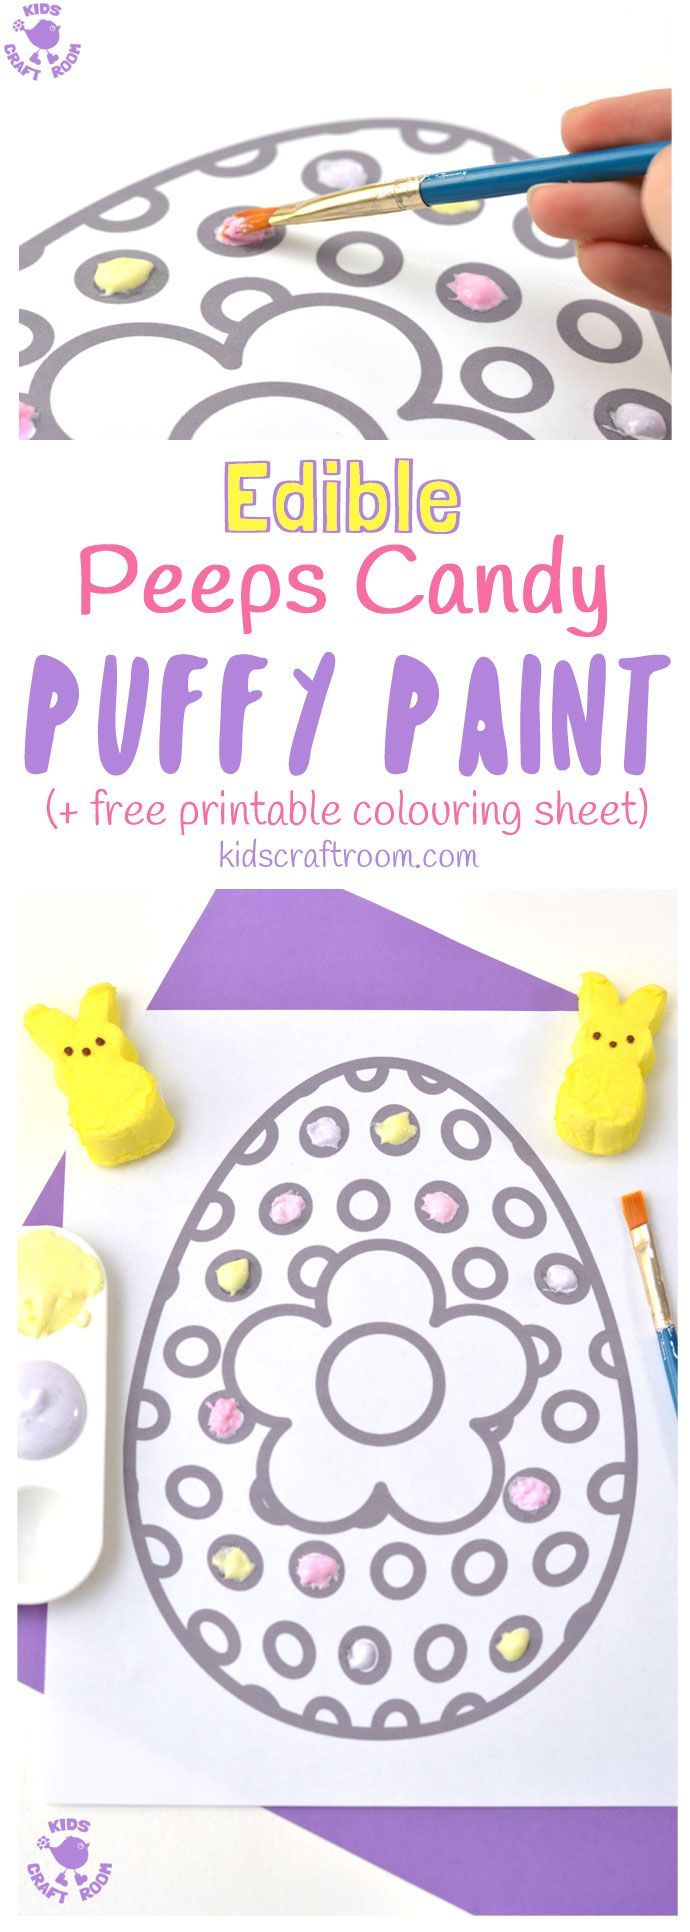 Here's a wonderfully easy and totally edible Peeps Puffy Paint Recipe you can make in just minutes. This homemade paint is fluffy and soft and comes in gorgeous pastel colours perfect for Spring and Summer art. Kids will have a finger licking good time getting creative with this fun and delicious sensory painting idea! #paintrecipe #painting #homemadepaint #ediblepaint #fingerpaintrecipe #puffypaint #puffypaintrecipe #easter #printables #kidsart #kidscraftroom #kidscrafts via @KidsCraftRoom